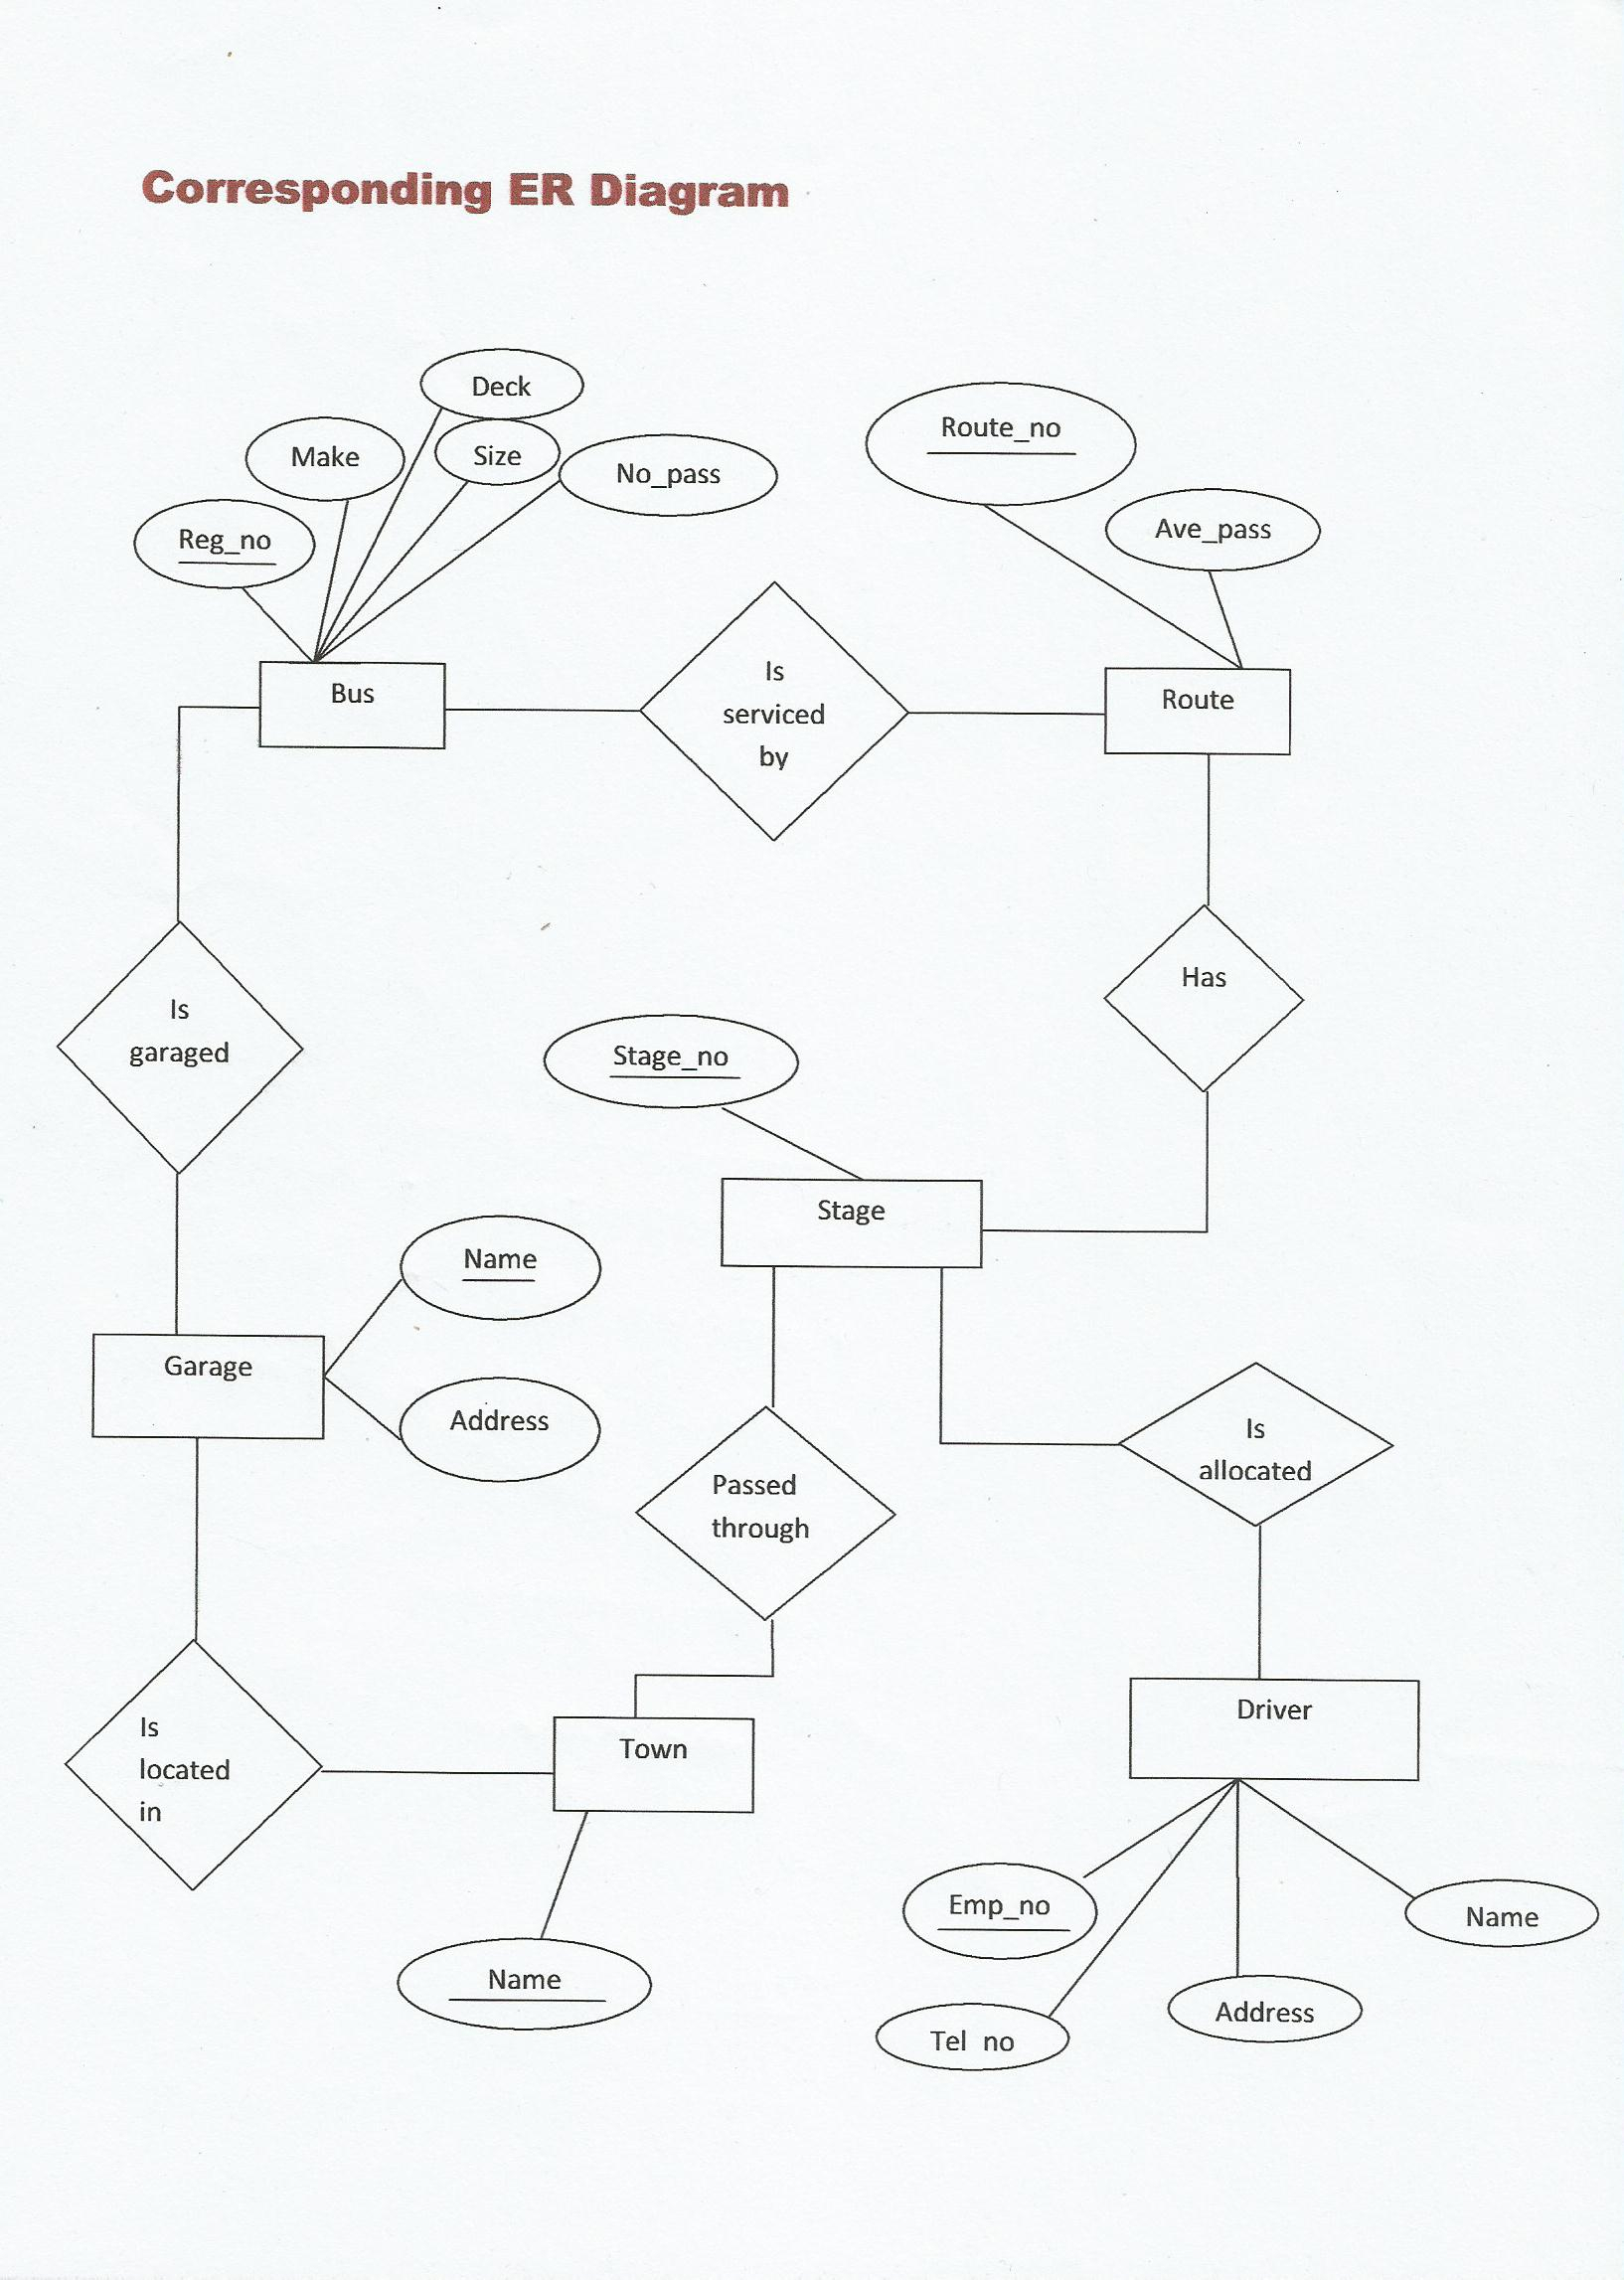 Mapping Of Er Diagram To Relational Model, Roll:no–41 | Lbs regarding Mapping An Er Diagram